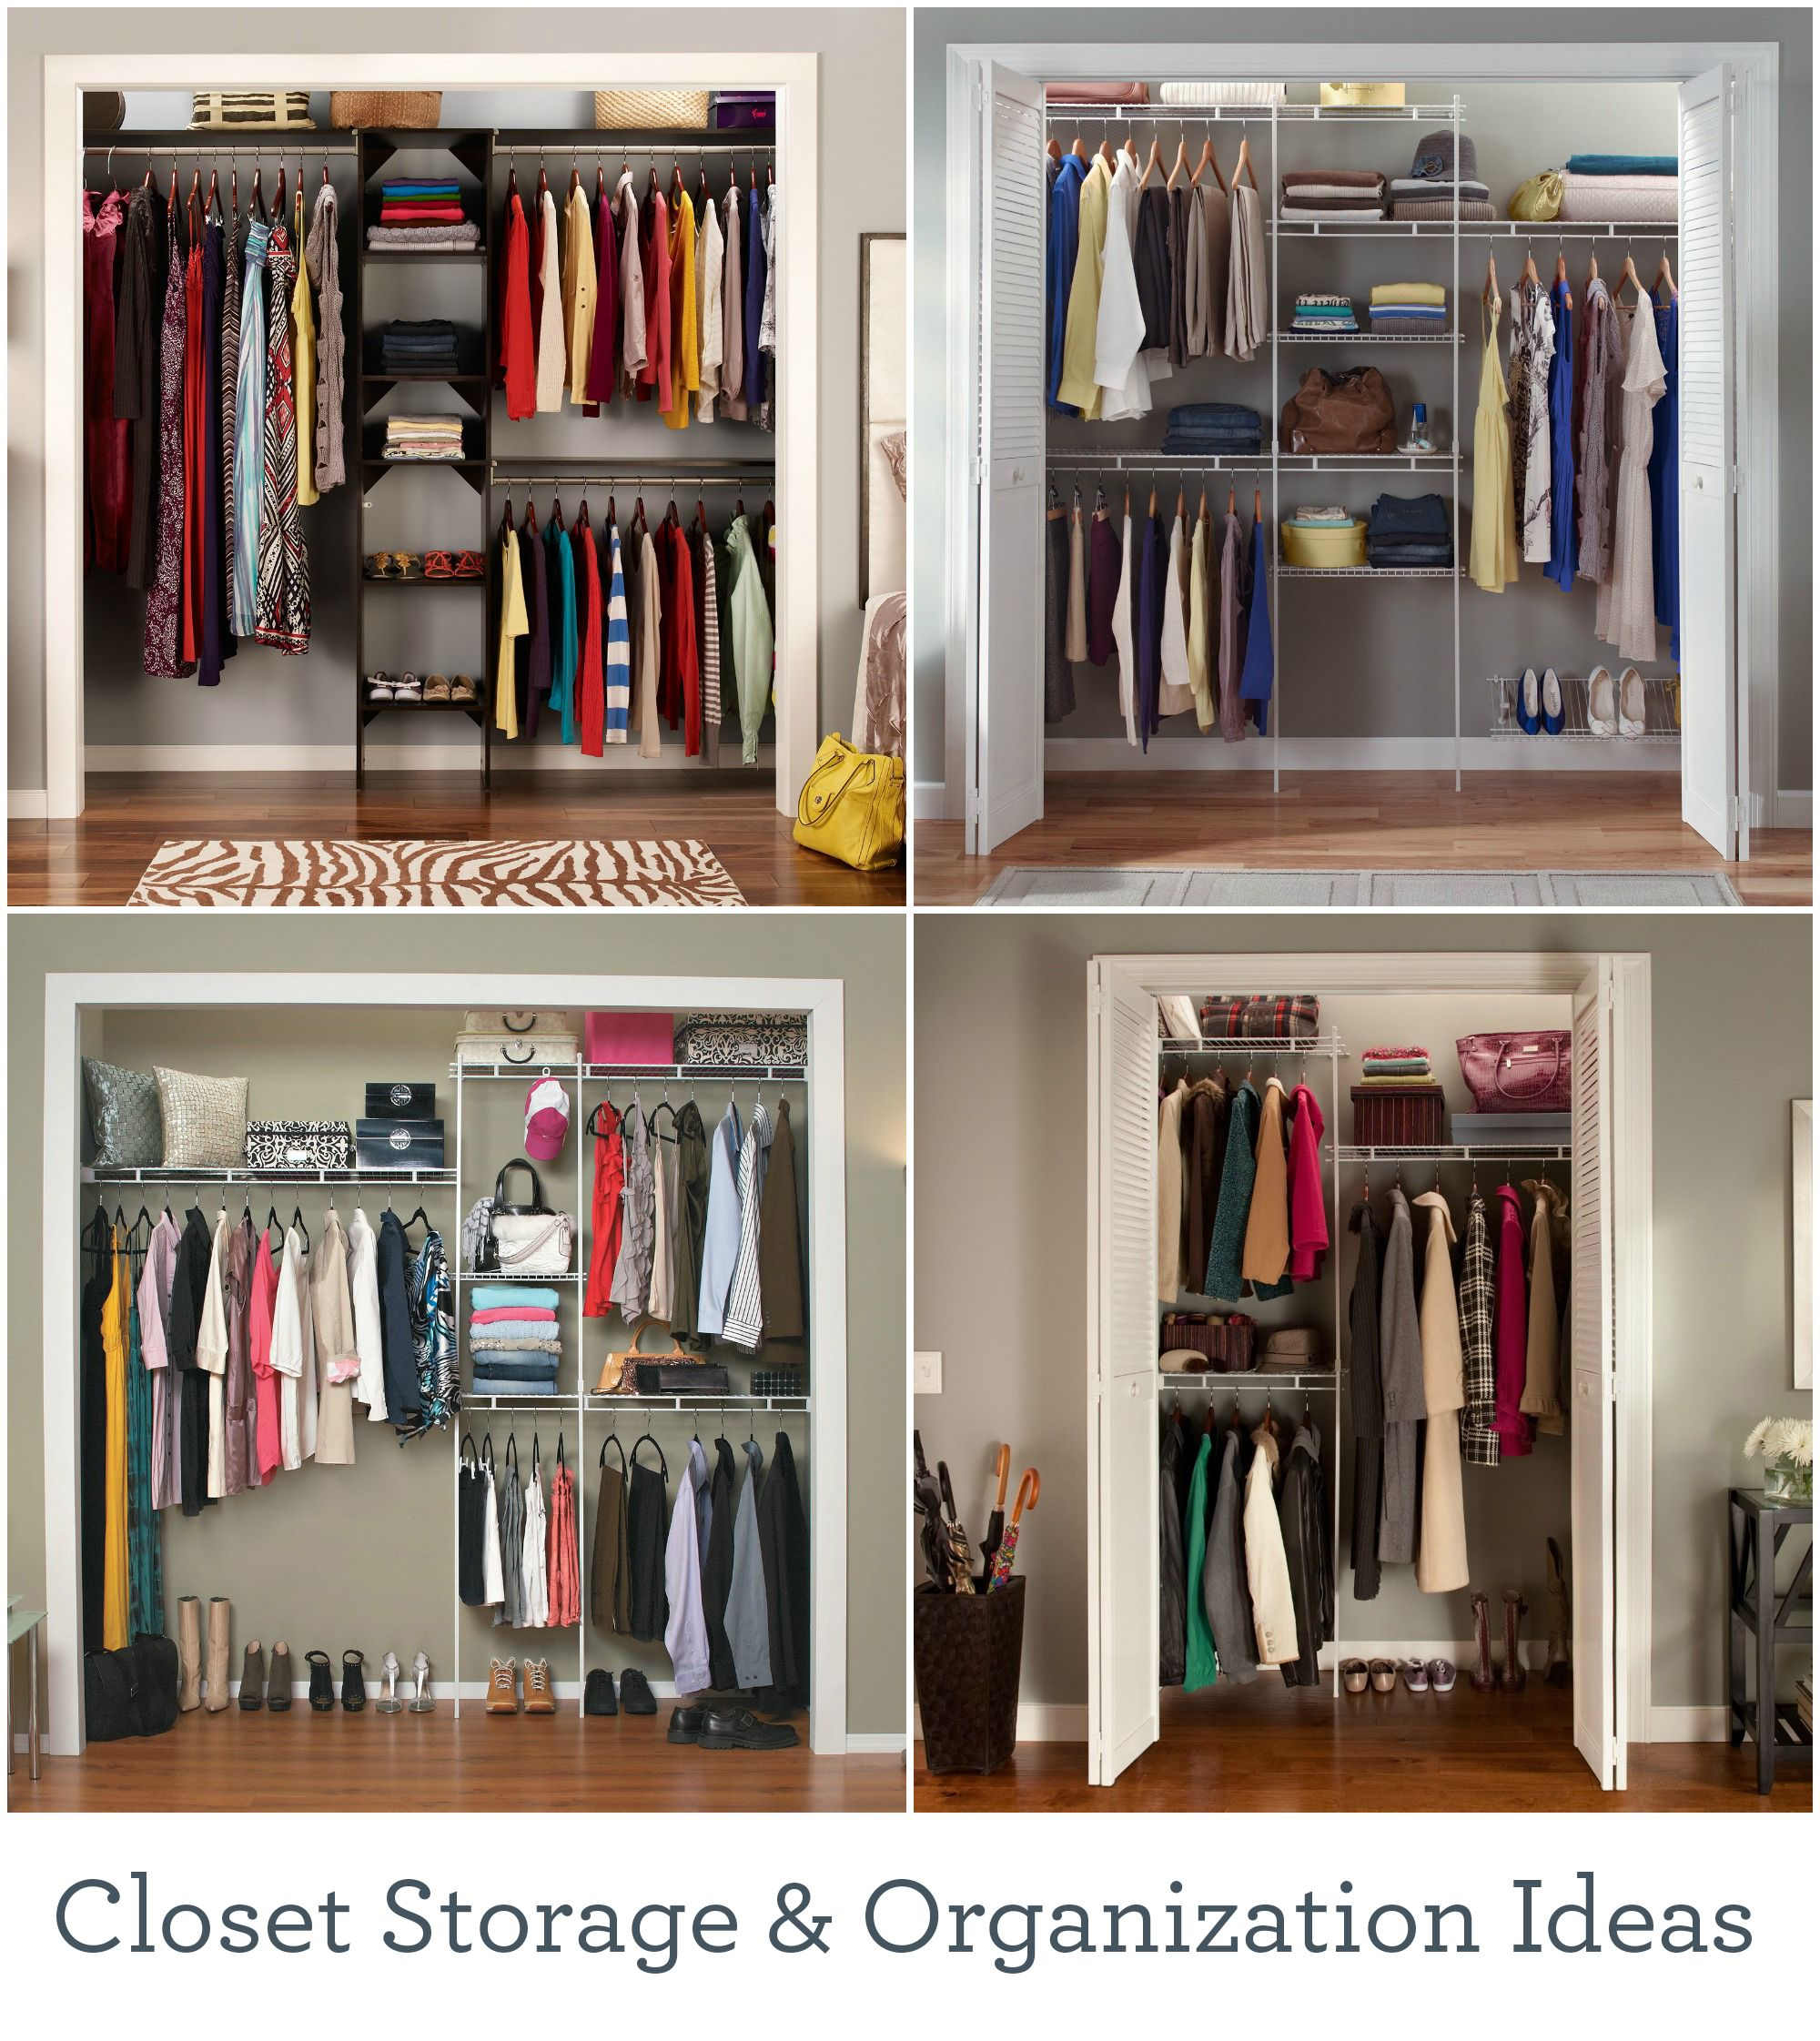 Make The Most Of Your Closet Space With These Storage Solutions